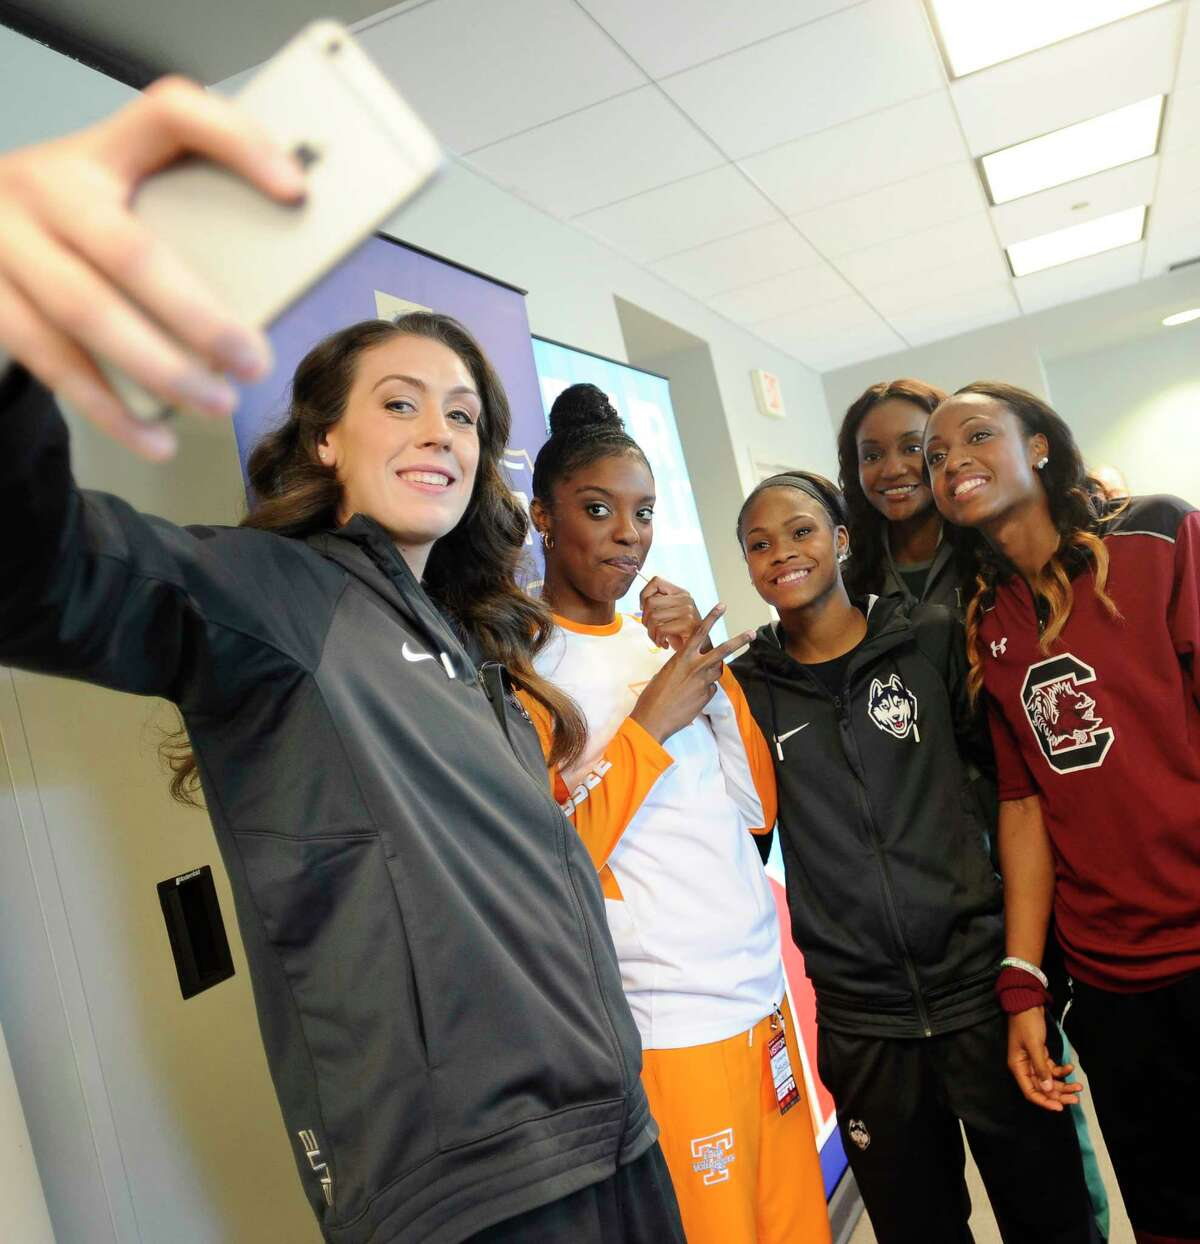 UConn's Breanna Stewart, left, takes a photo with, from left, Tennessee's Diamond DeShields, UConn's Moriah Jefferson, Baylor's Nina Davis and South Carolina's Tiffany Mitchell during NCAA women's basketball media day on Tuesday at ESPN in Bristol.